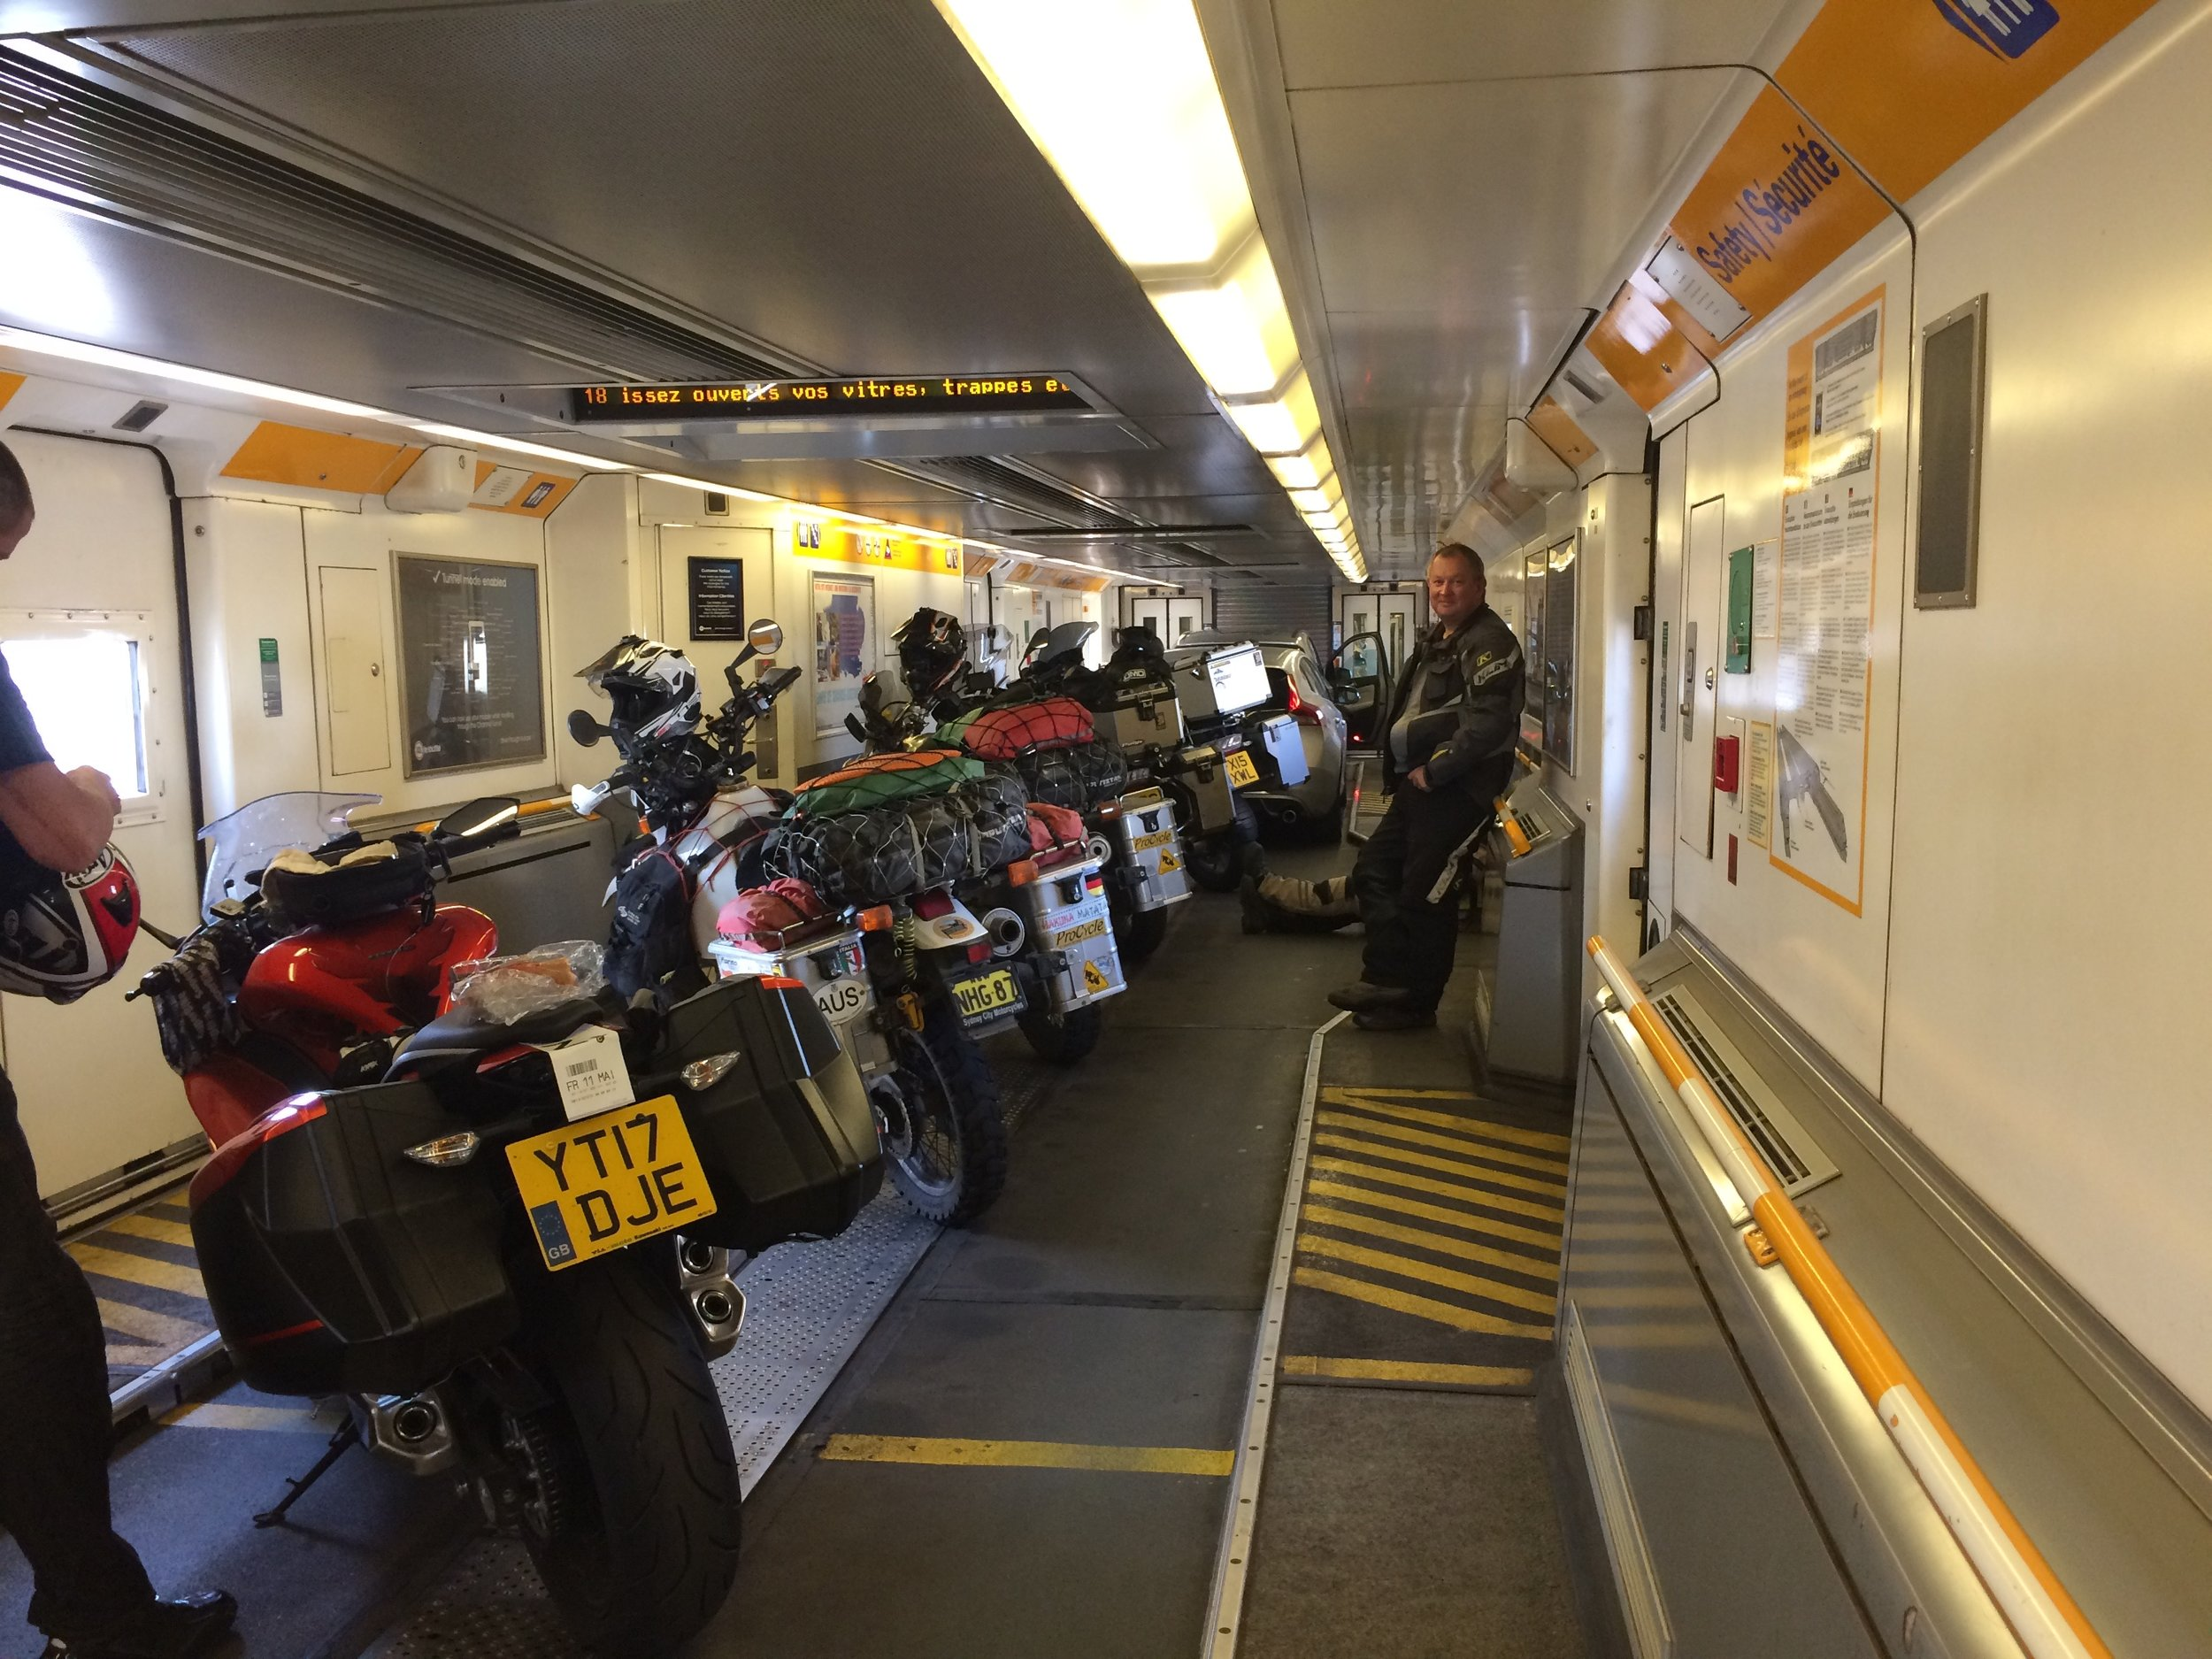 Eurotunnel from Calais to Folkstone.